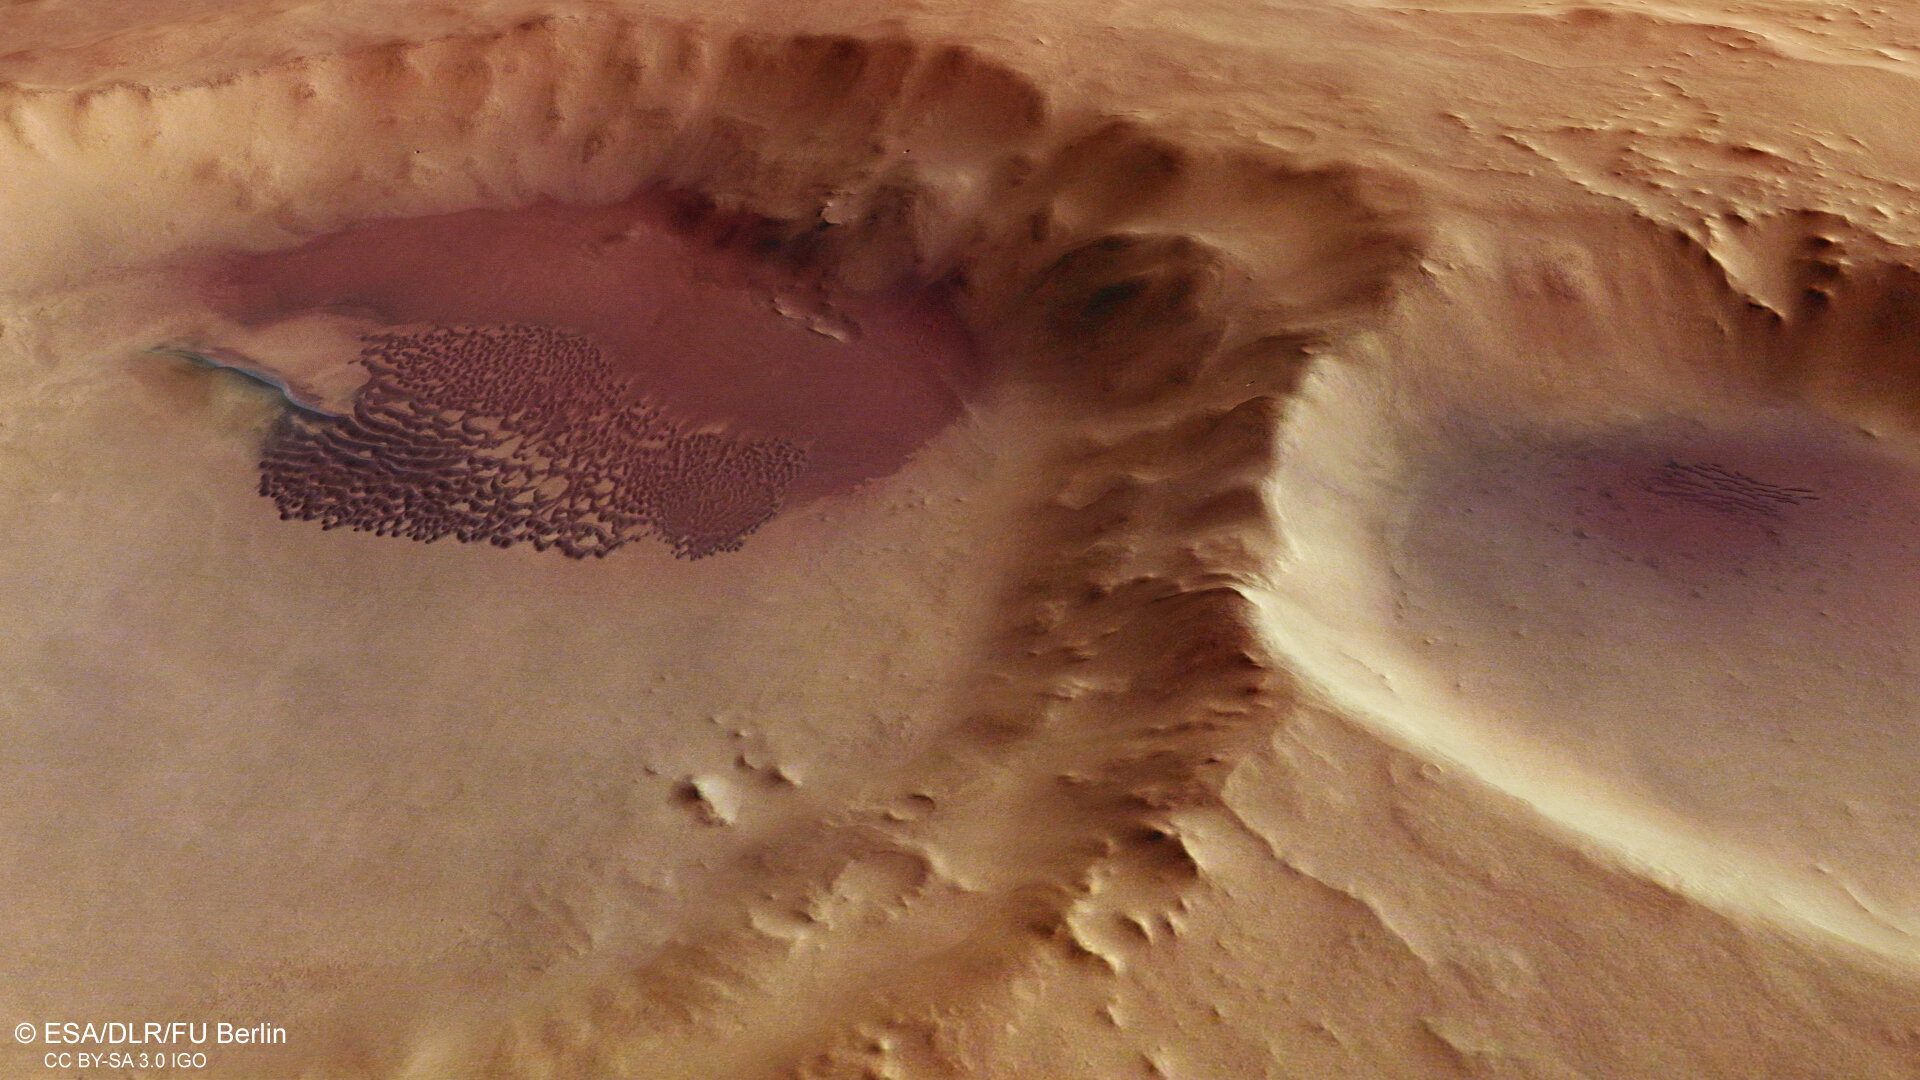 Dune field in a crater, perspective view